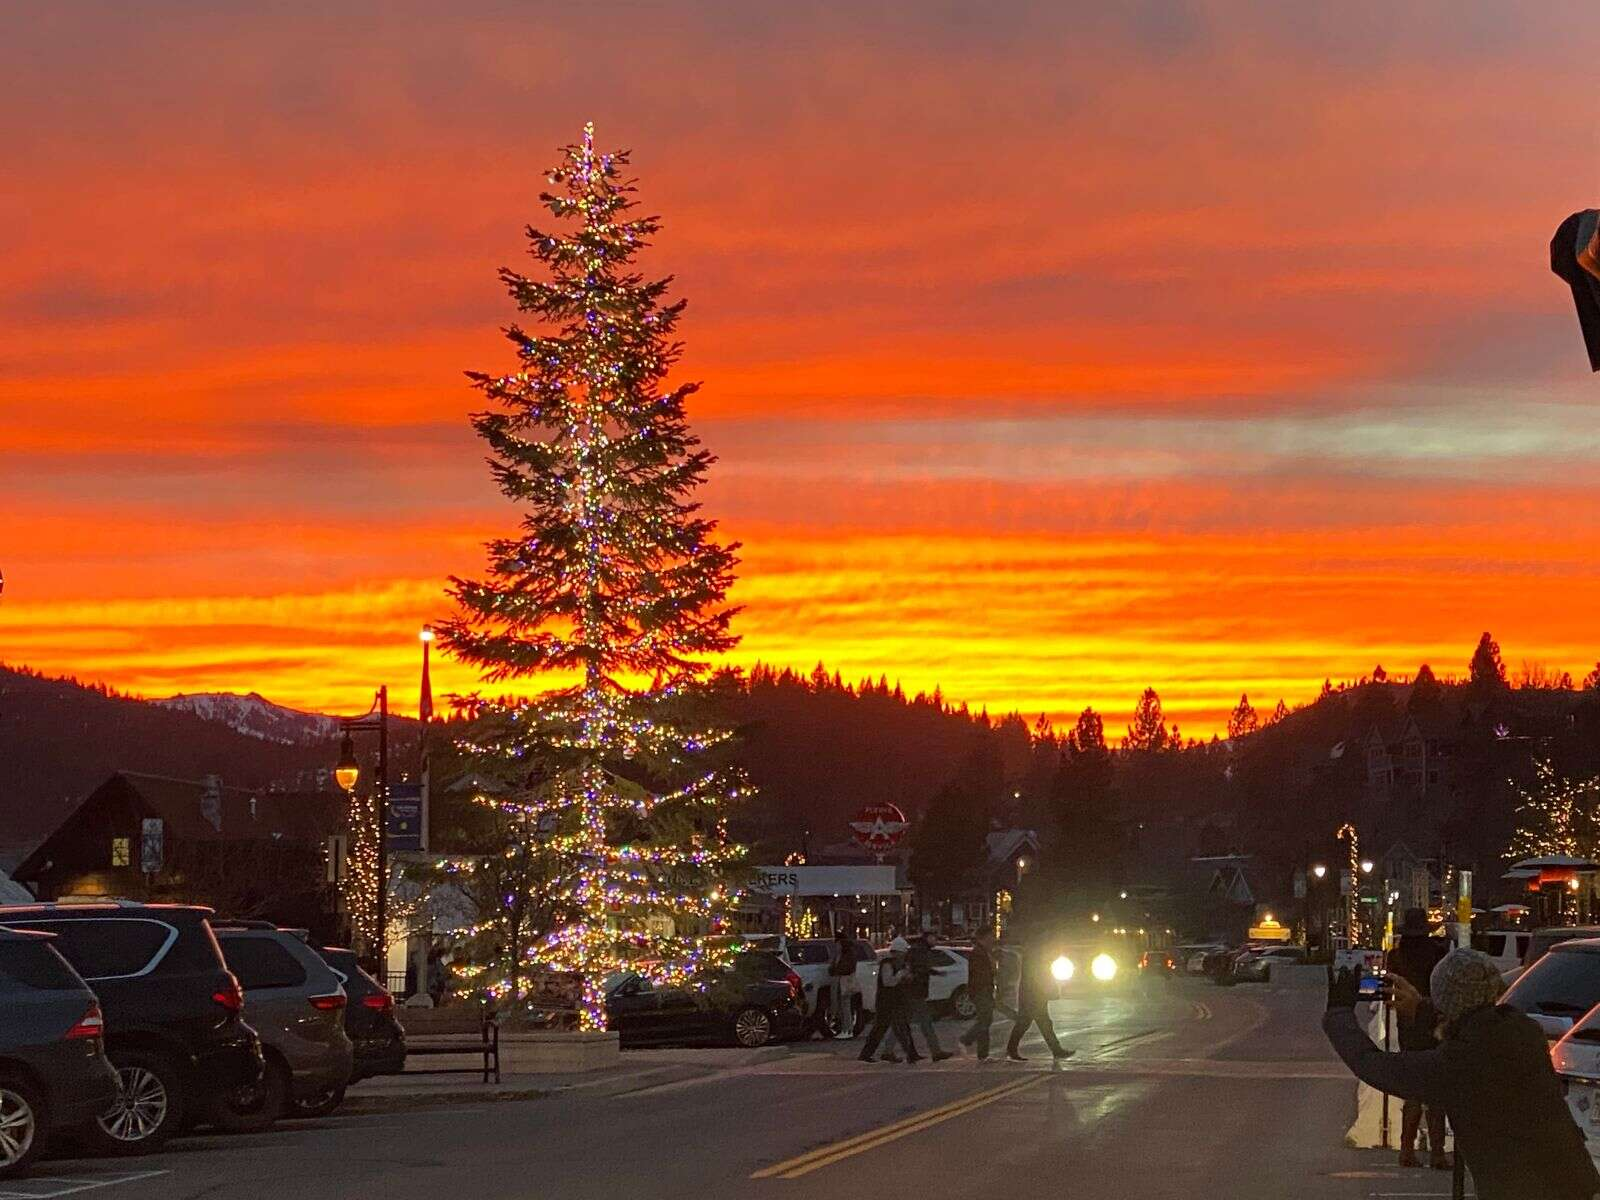 Downtown Truckee at sunset! | Submitted by Sally Abarta